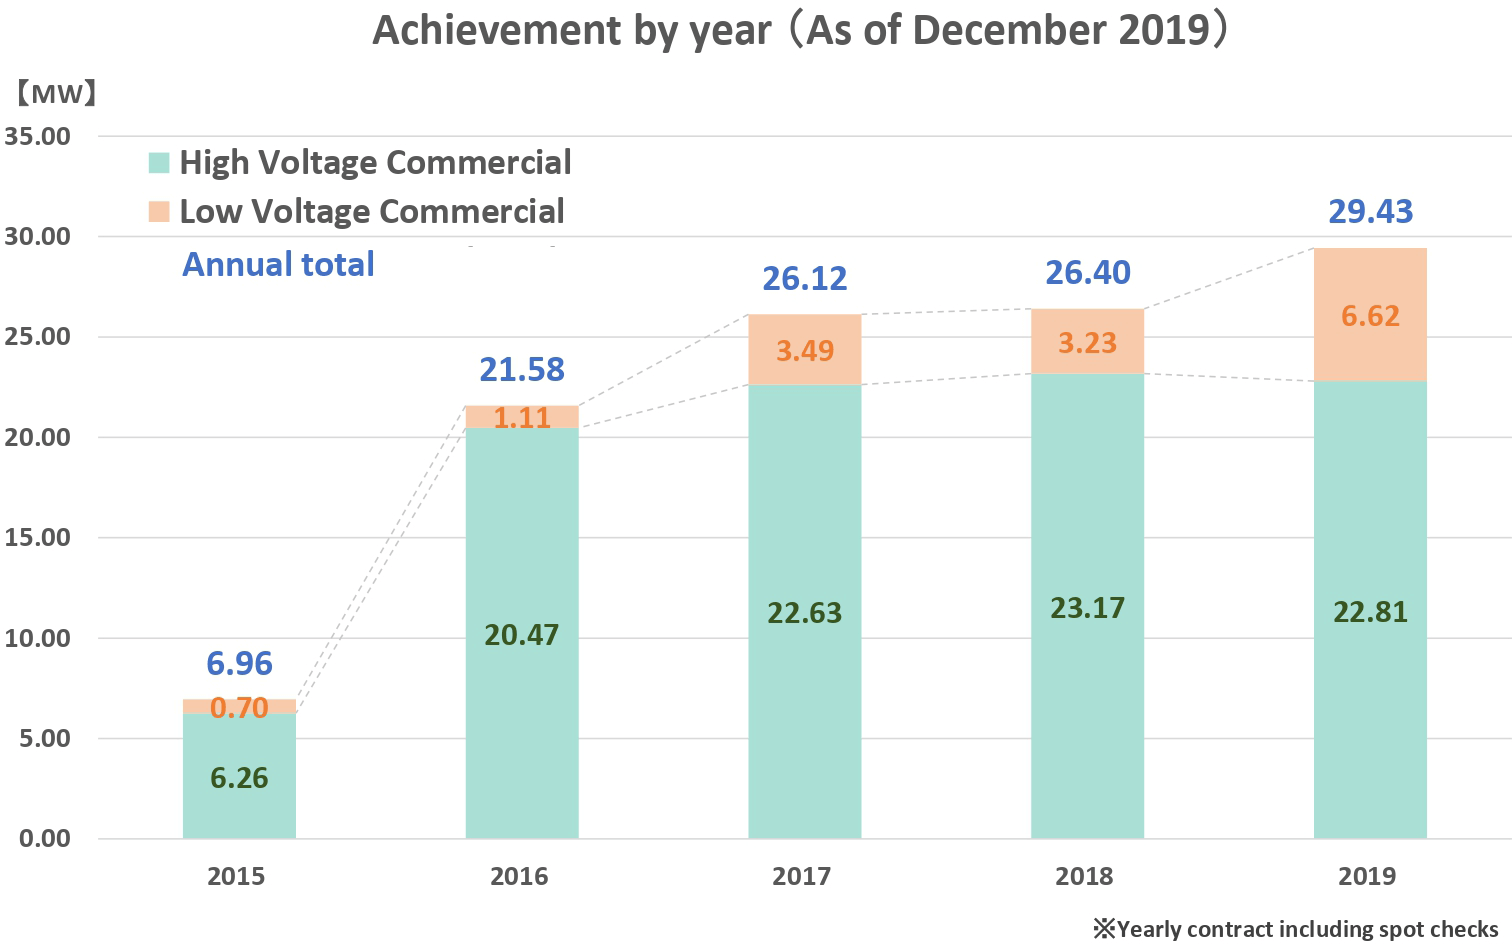 Achievement by year(As of December 2018)